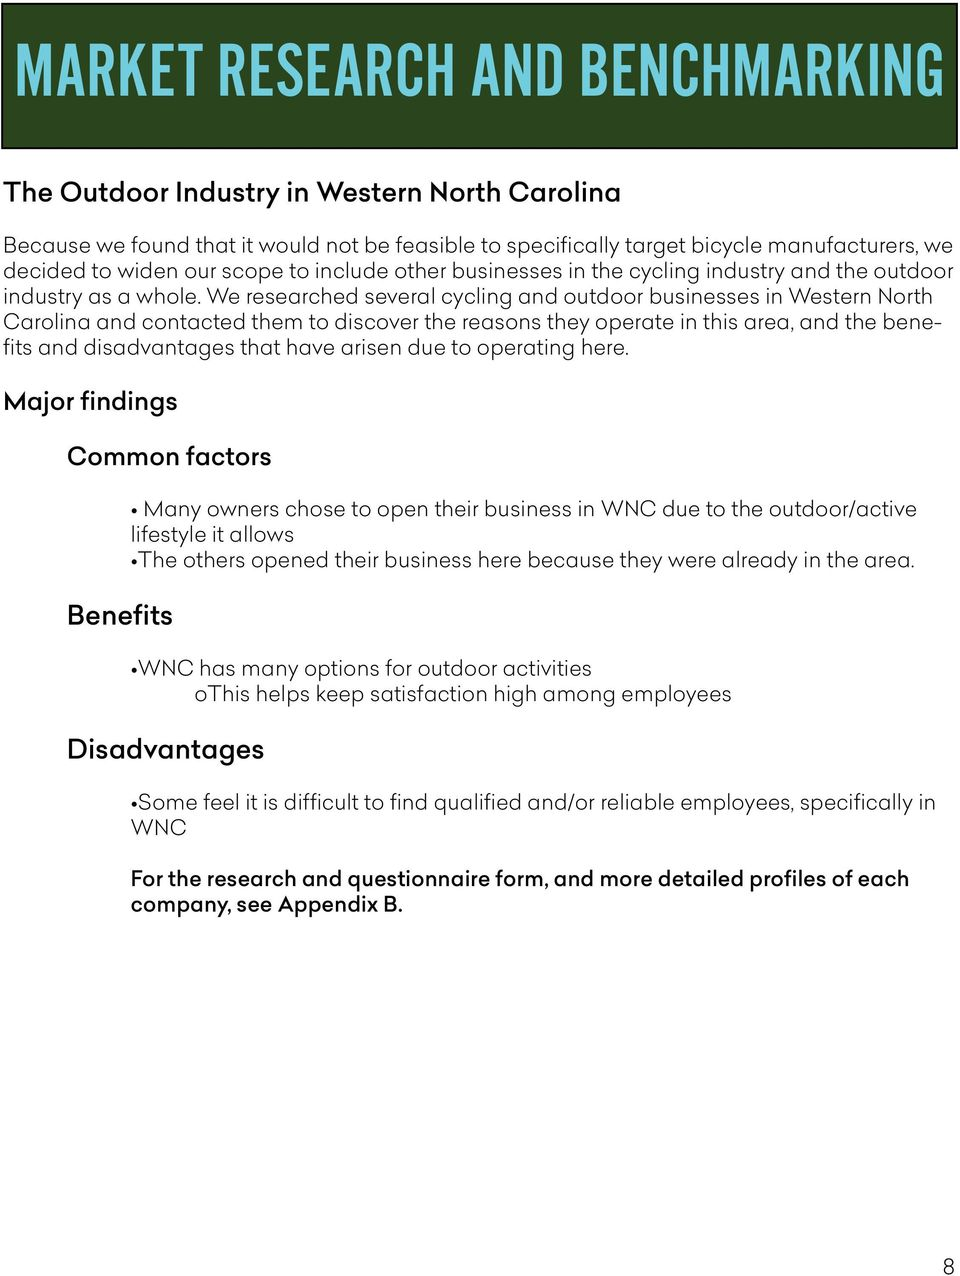 We researched several cycling and outdoor businesses in Western North Carolina and contacted them to discover the reasons they operate in this area, and the benefits and disadvantages that have